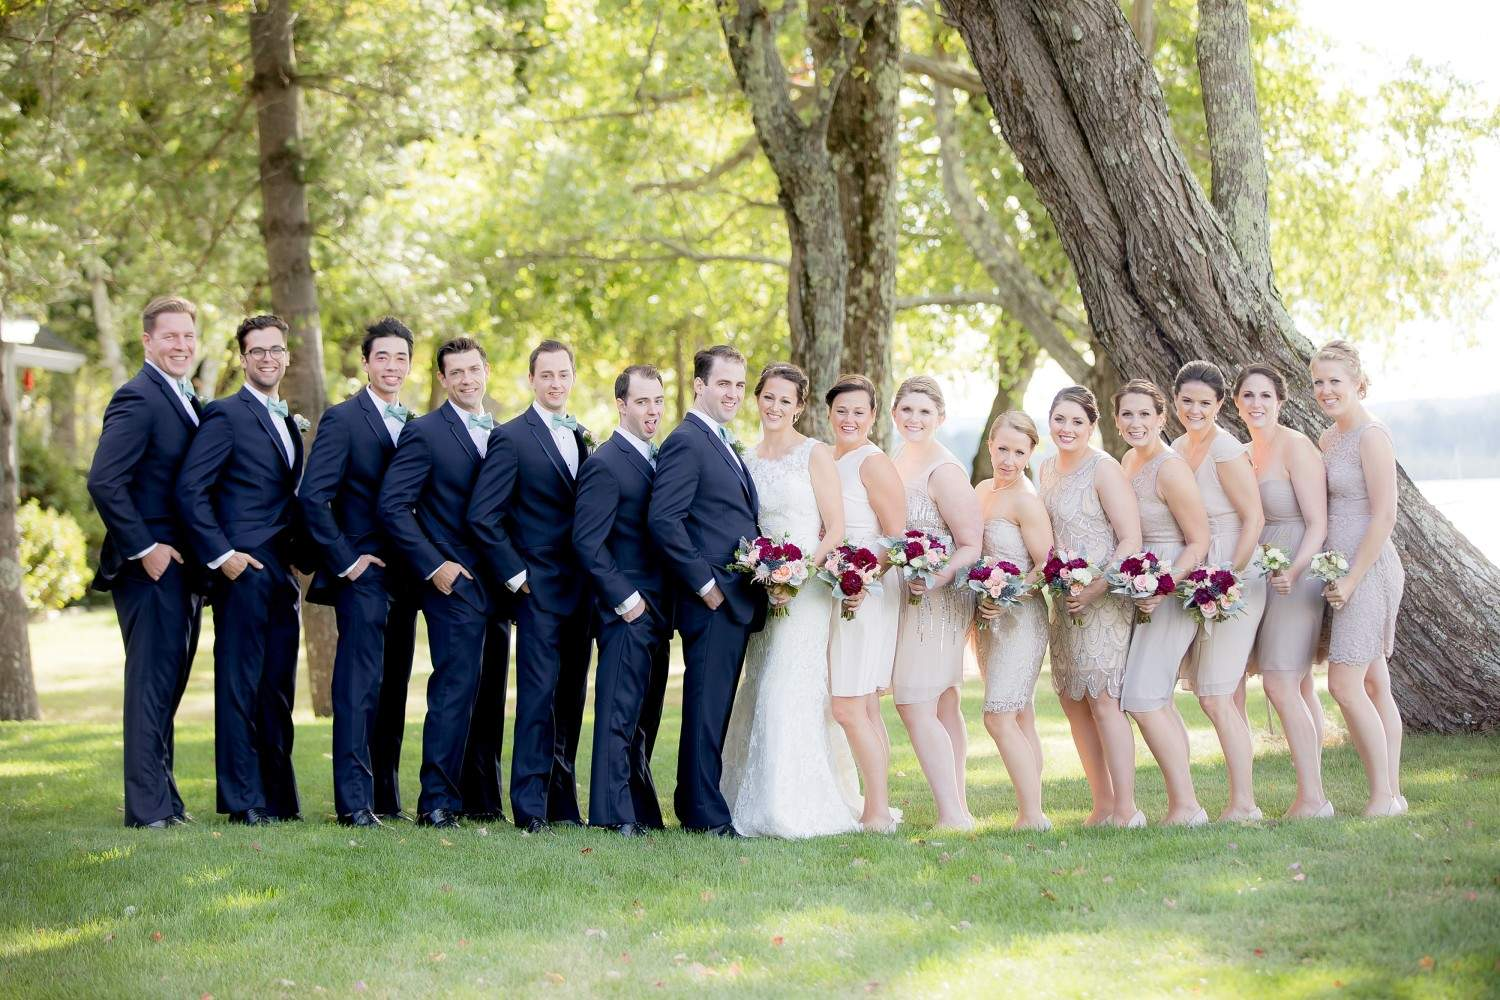 NH Wedding Photographer- K. Lenox Photography 3